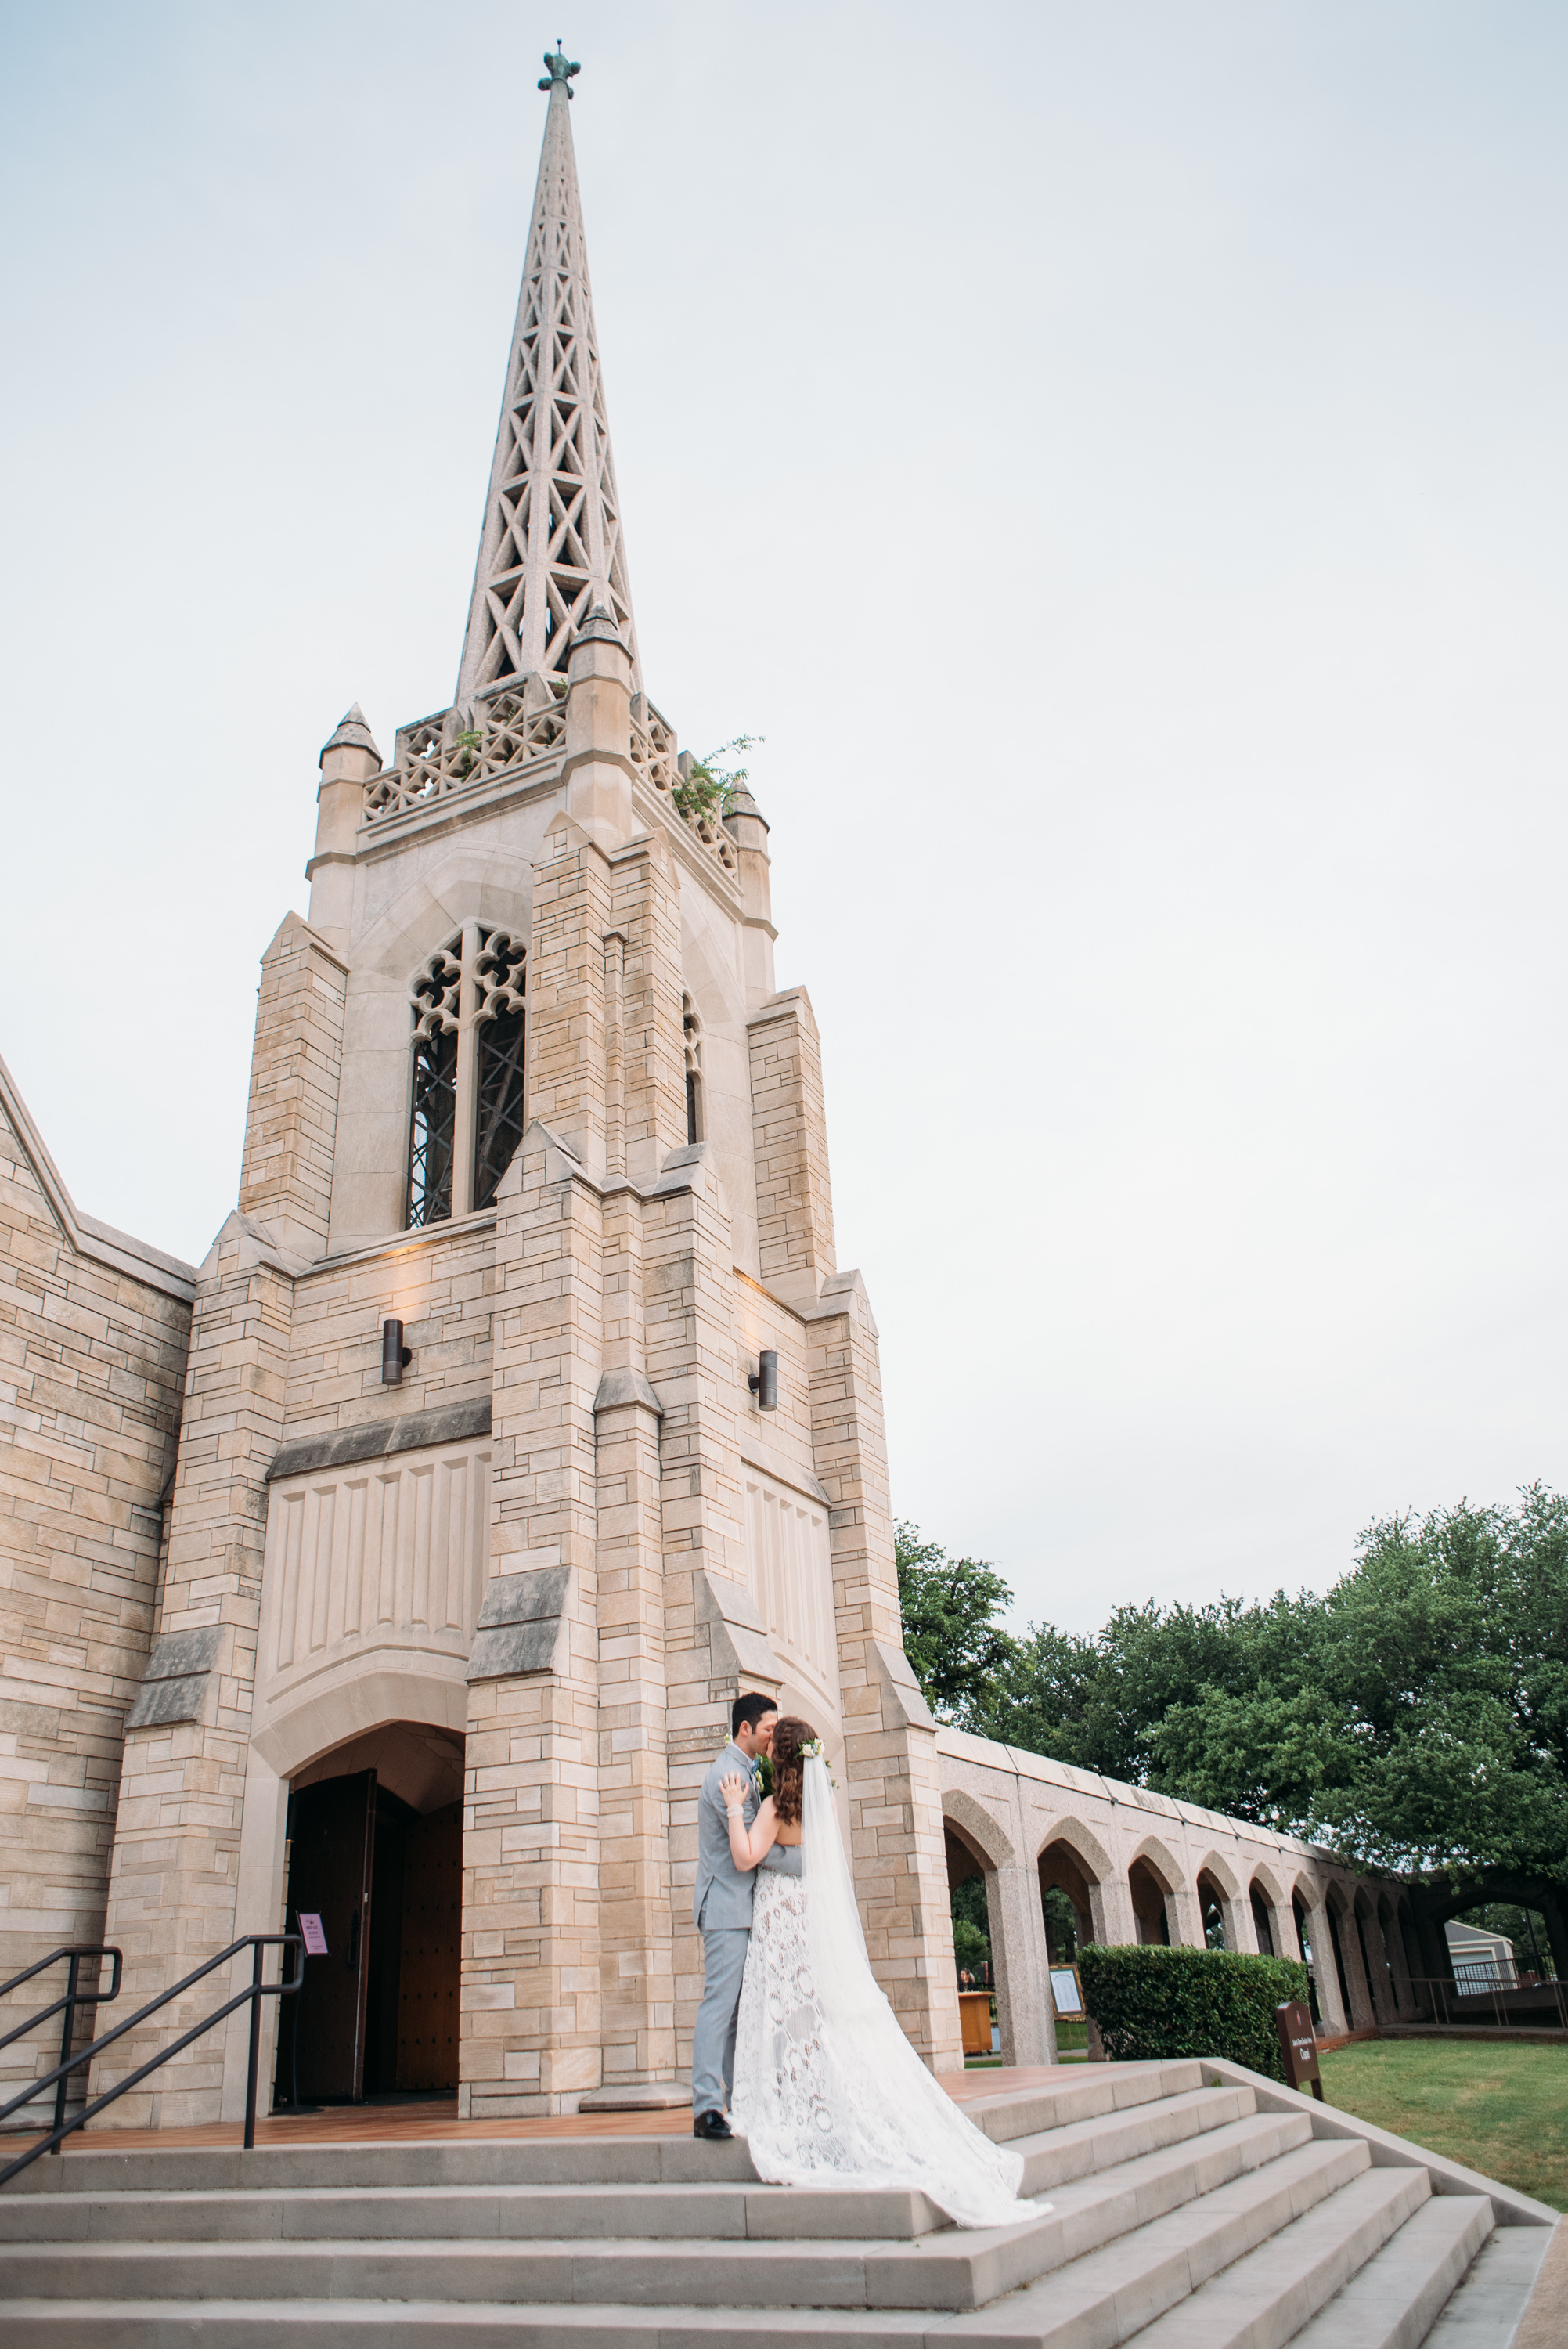 BelltowerChapelGarden-OutsideReception-AggieWedding-32.jpg